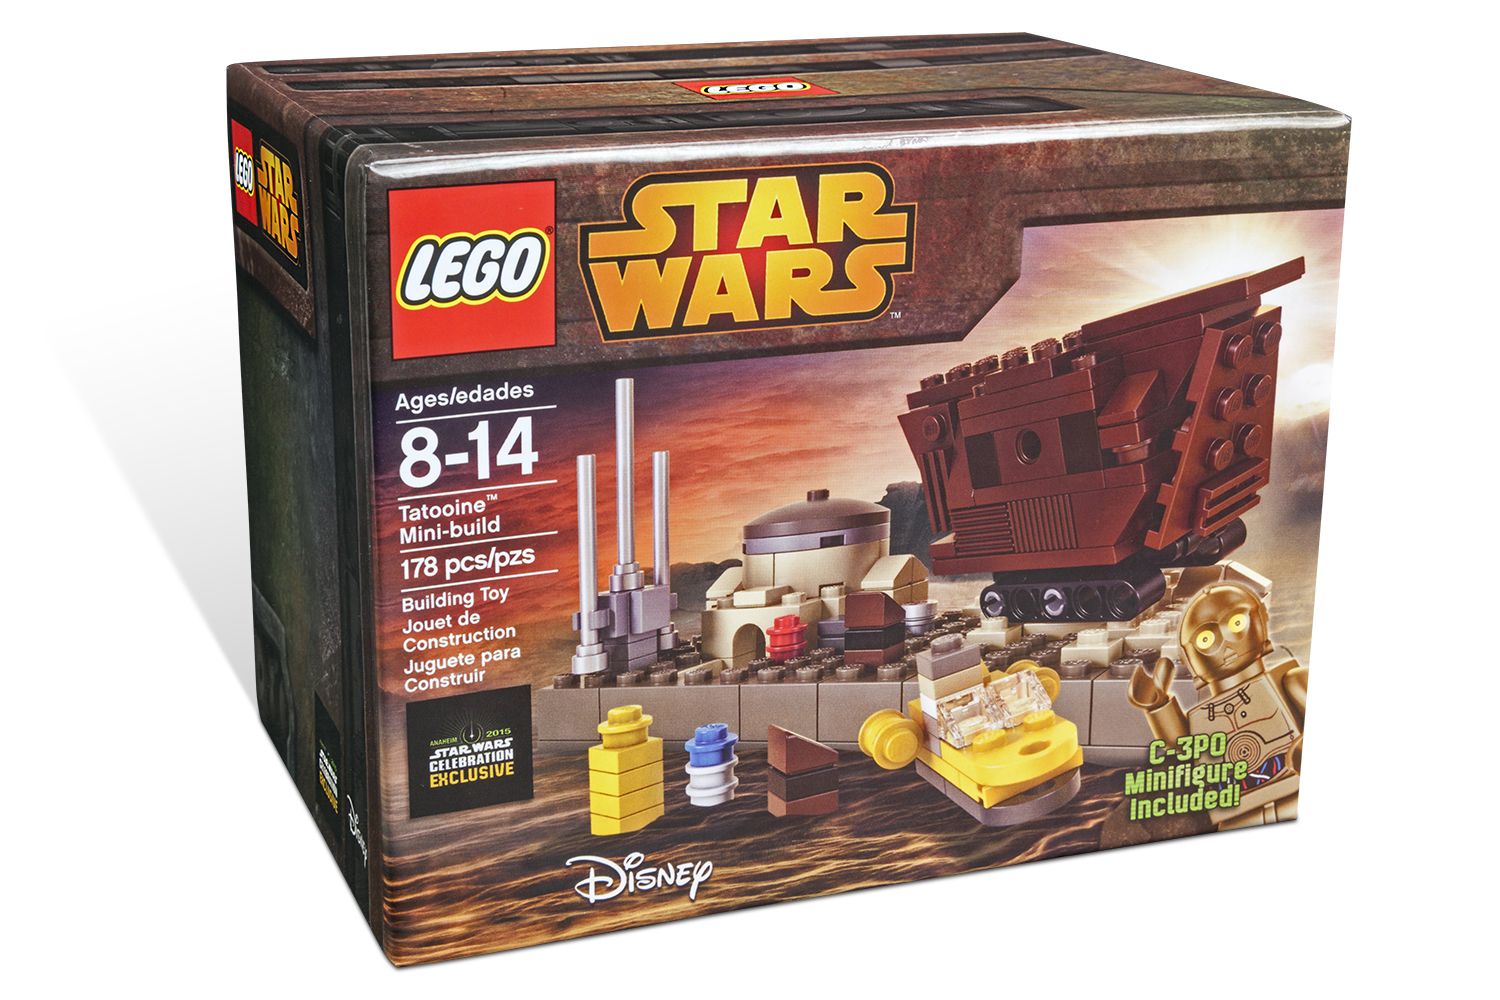 For Wars Swc Peek Lego Exclusive Sneak – Star rdCeBxoW